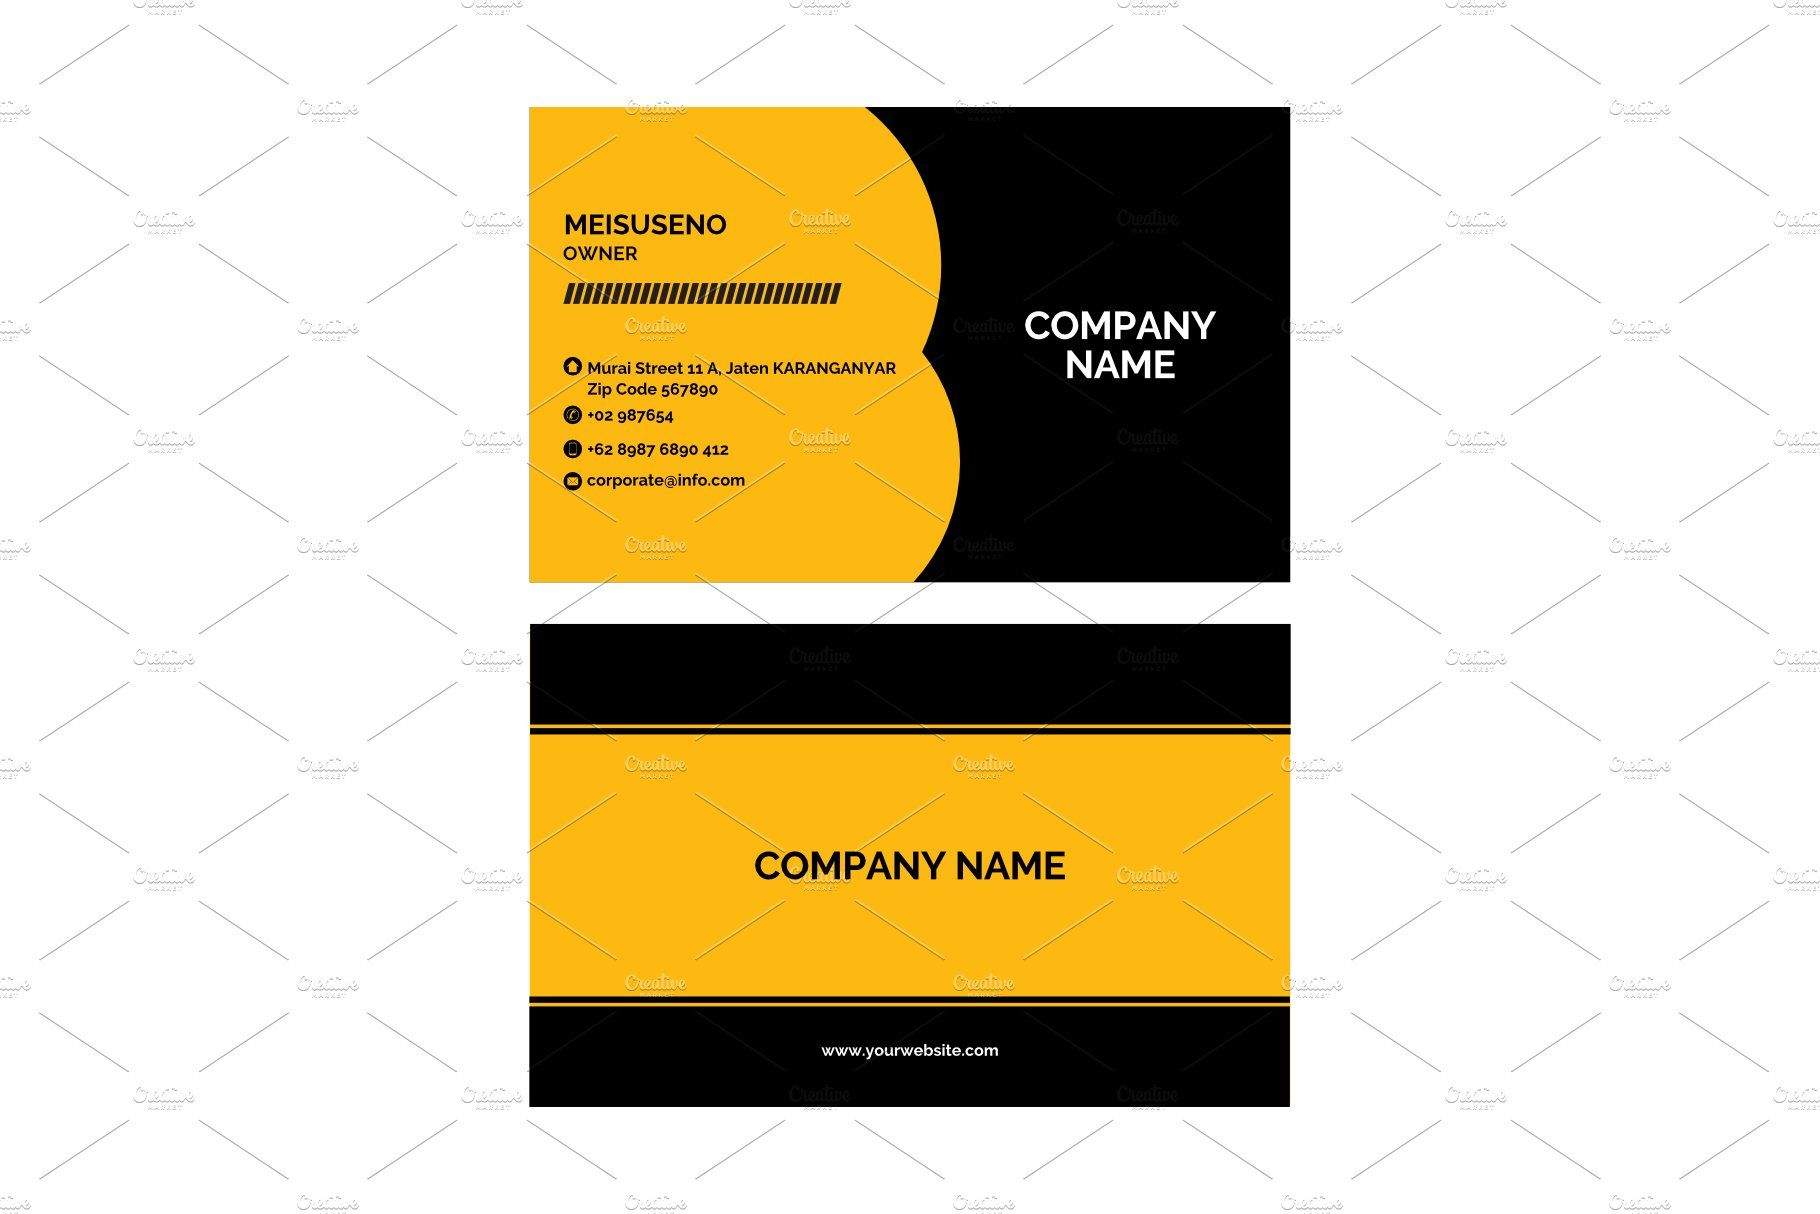 Corporate Business Card In 2020 Corporate Business Card Corporate Business Cool Business Cards